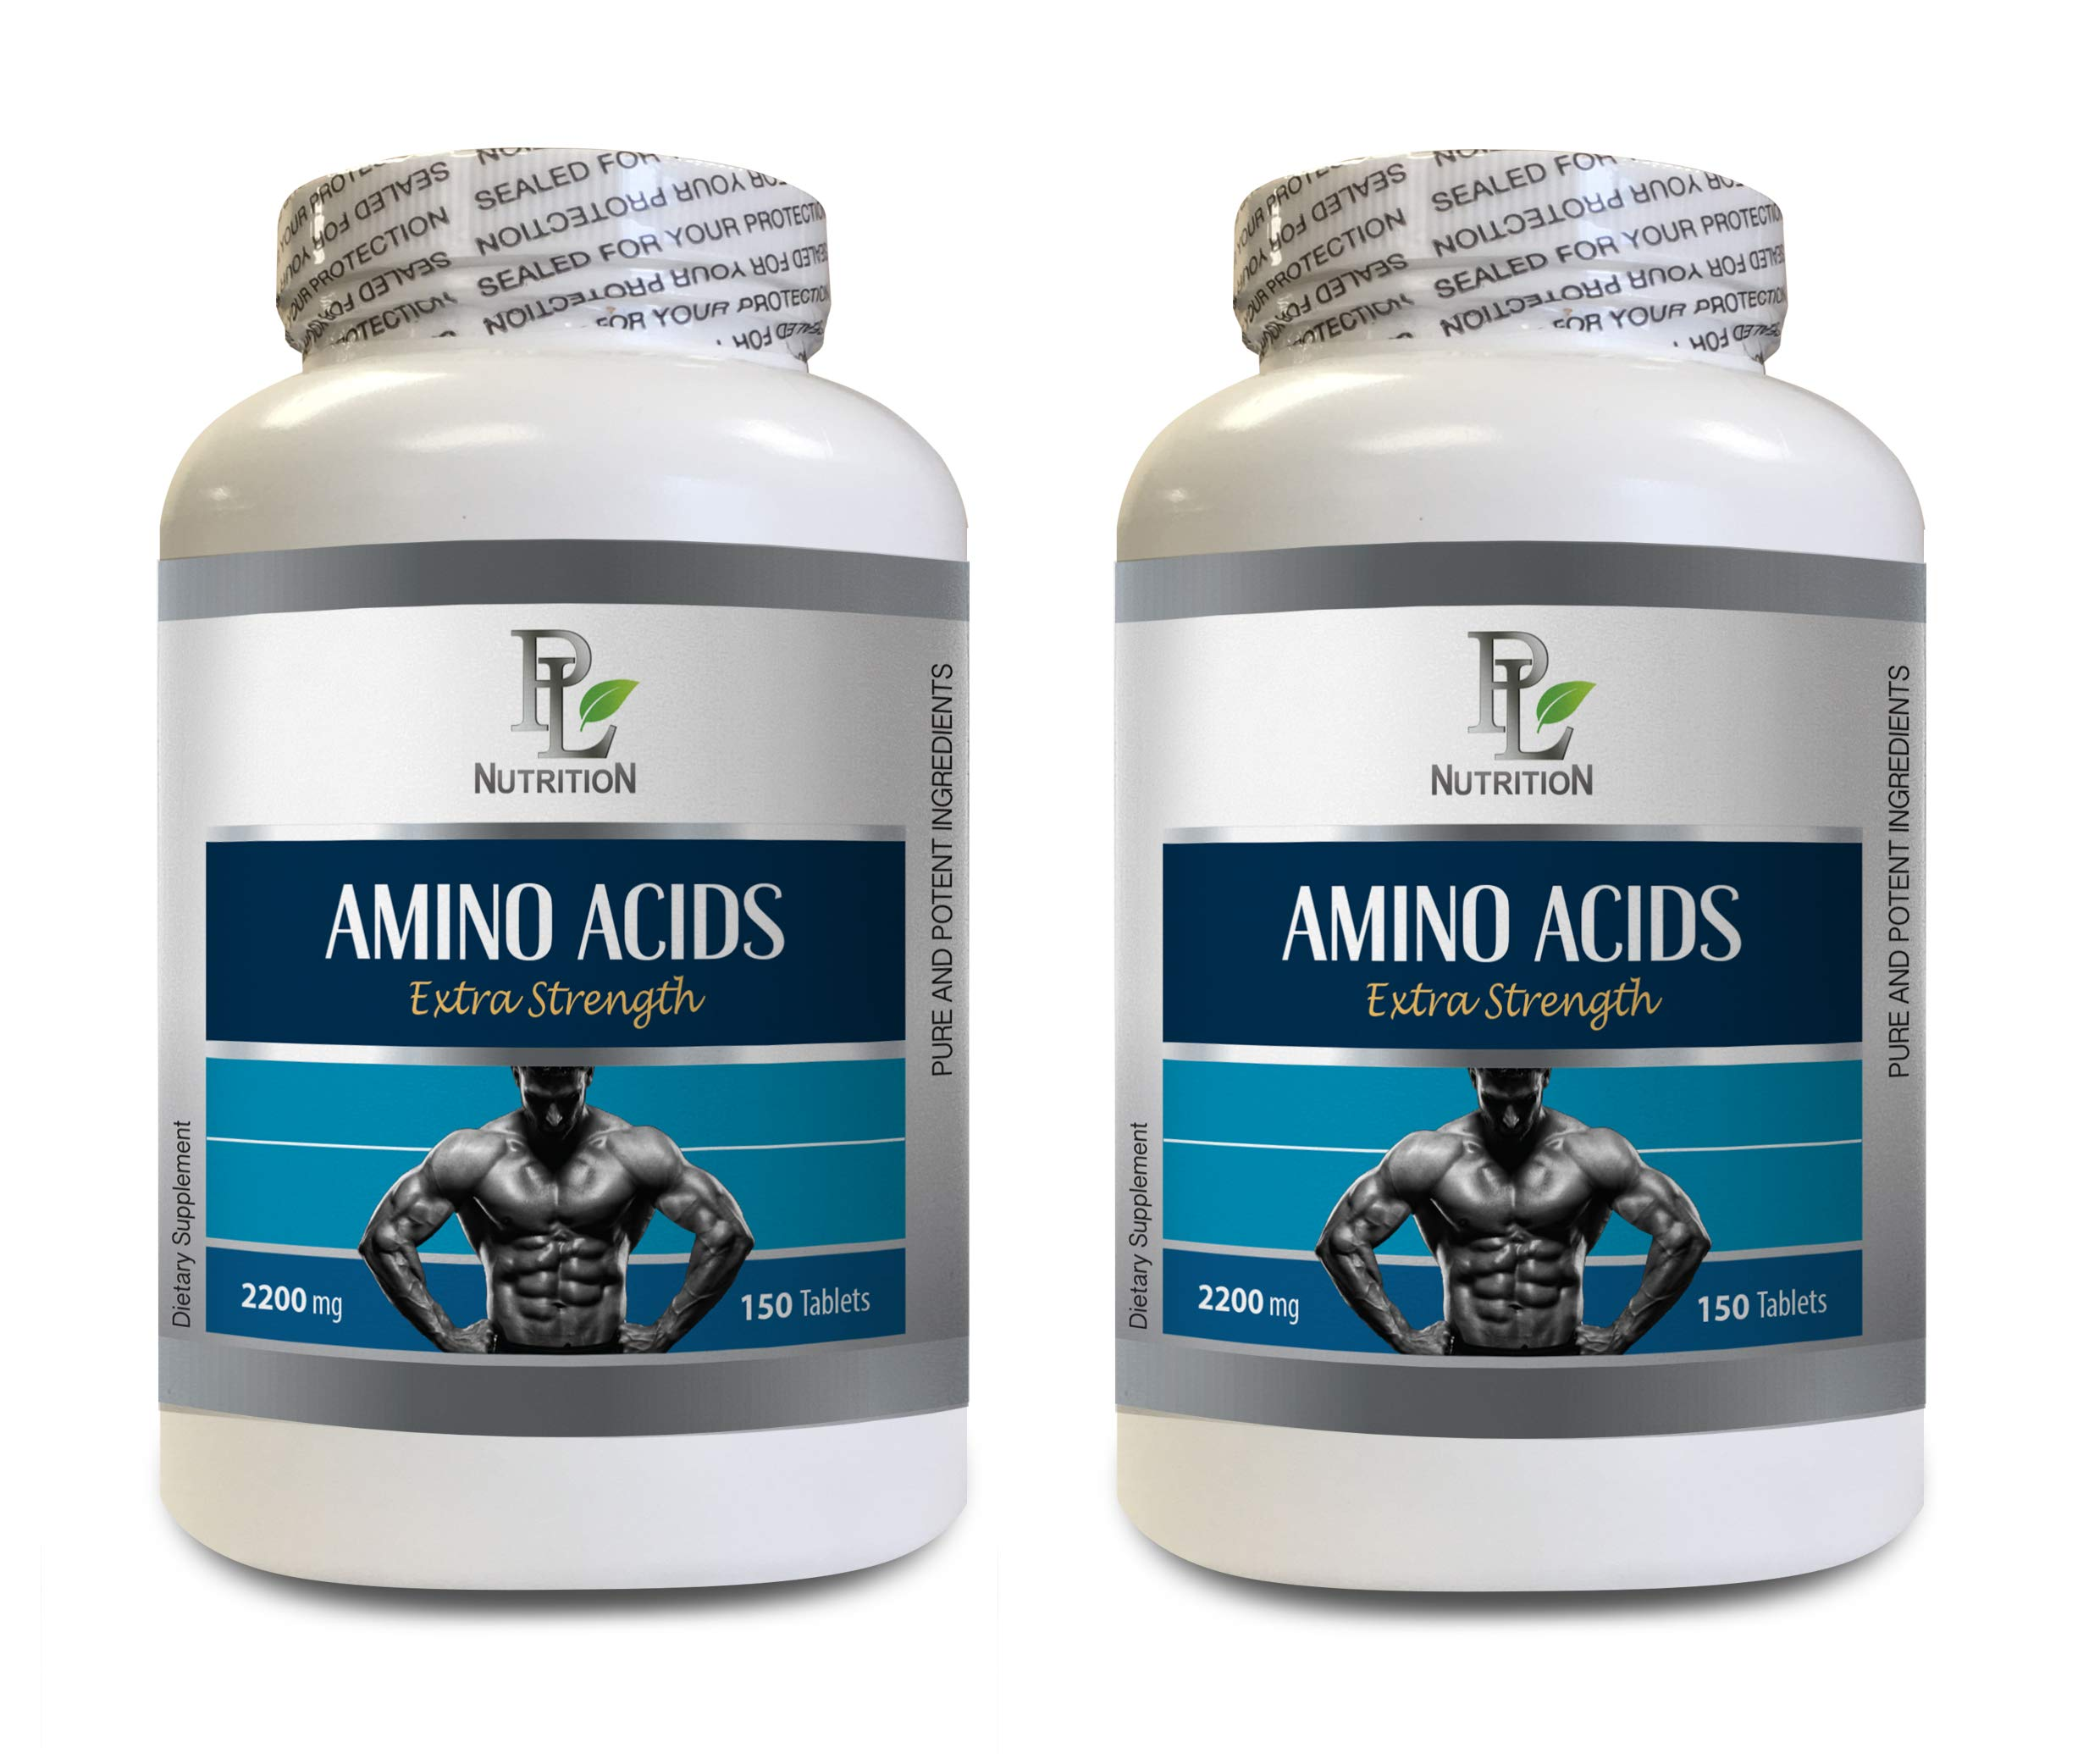 Muscle Building Fat Burner - Amino ACIDS 2200mg - Extra Strength - Amino acids l-arginine - 2 Bottles 300 Tablets